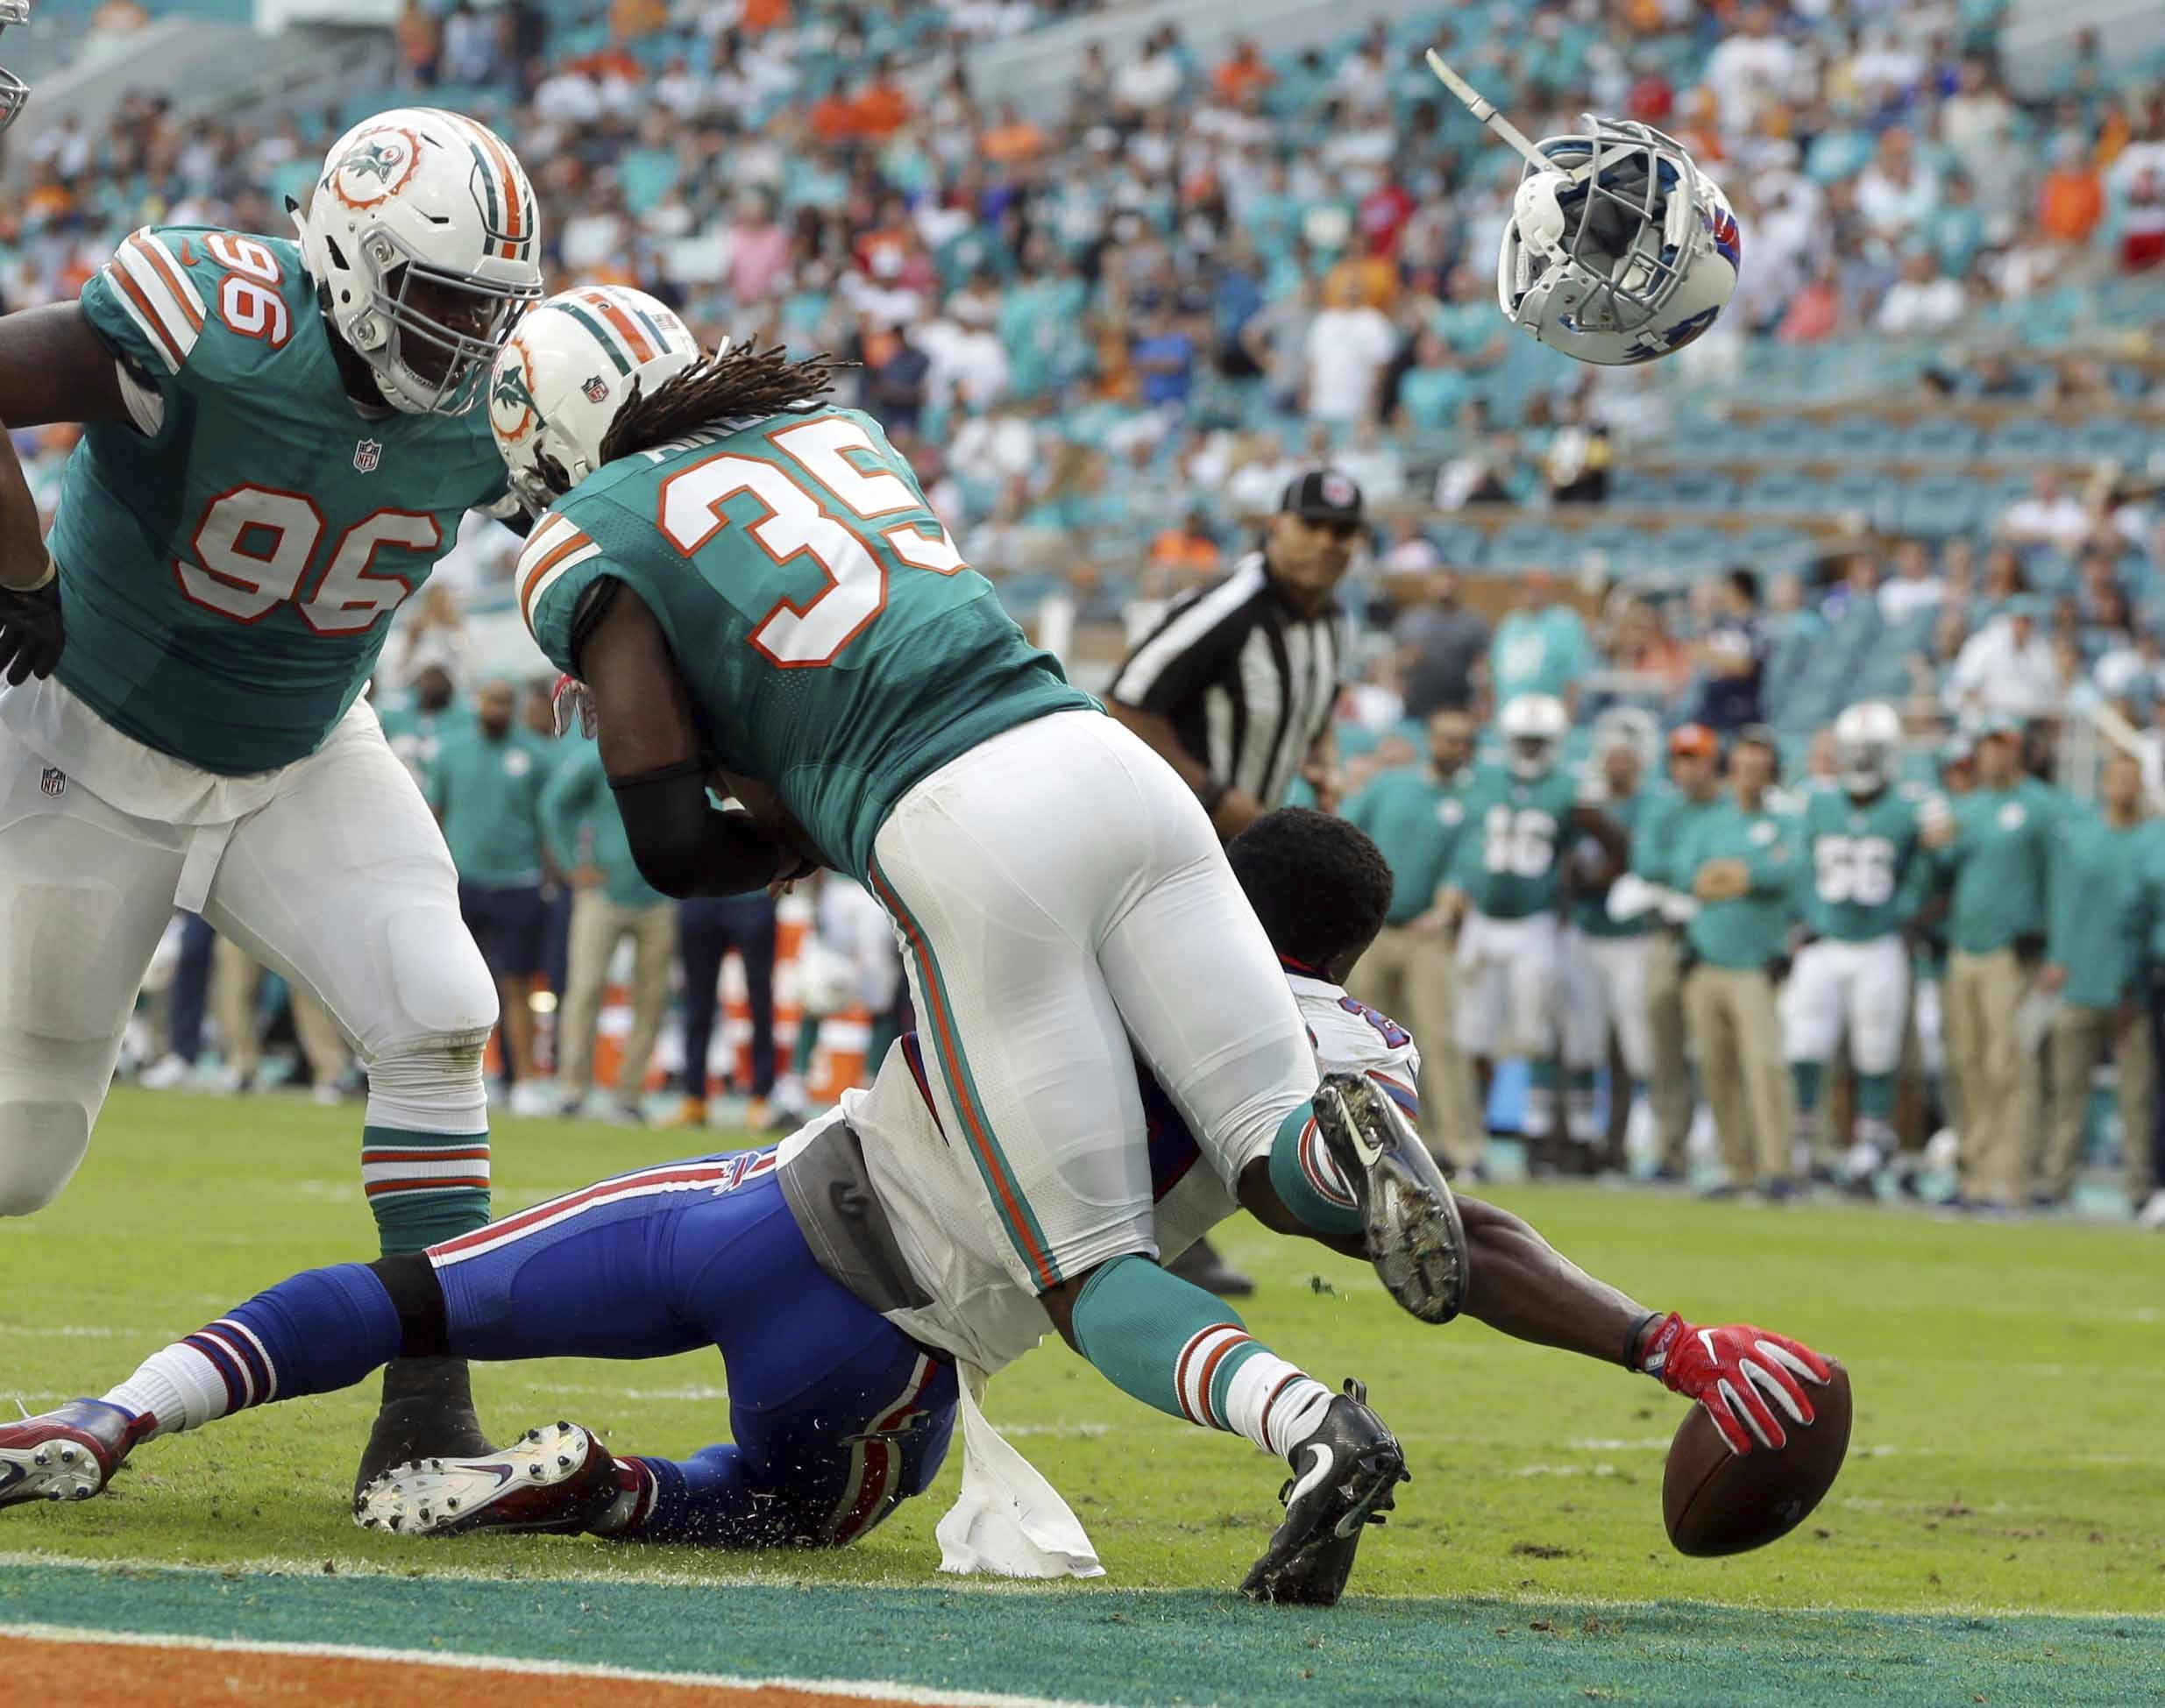 Dolphins cut player mid-practice who was arrested on drug charg…